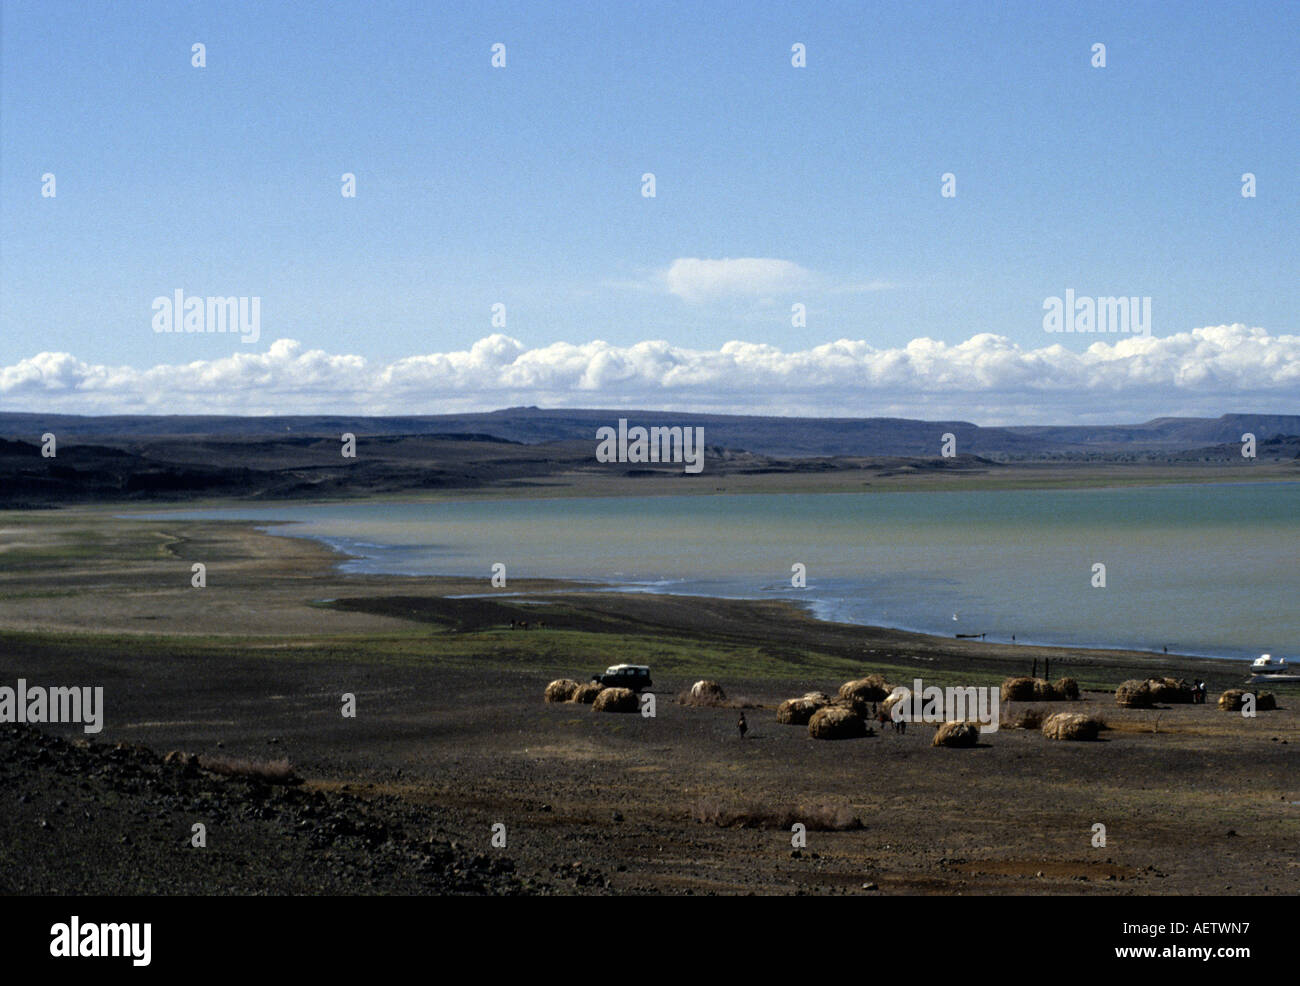 El Molo village on the shores of Lake Turkana, northern Kenya, East Africa Stock Photo